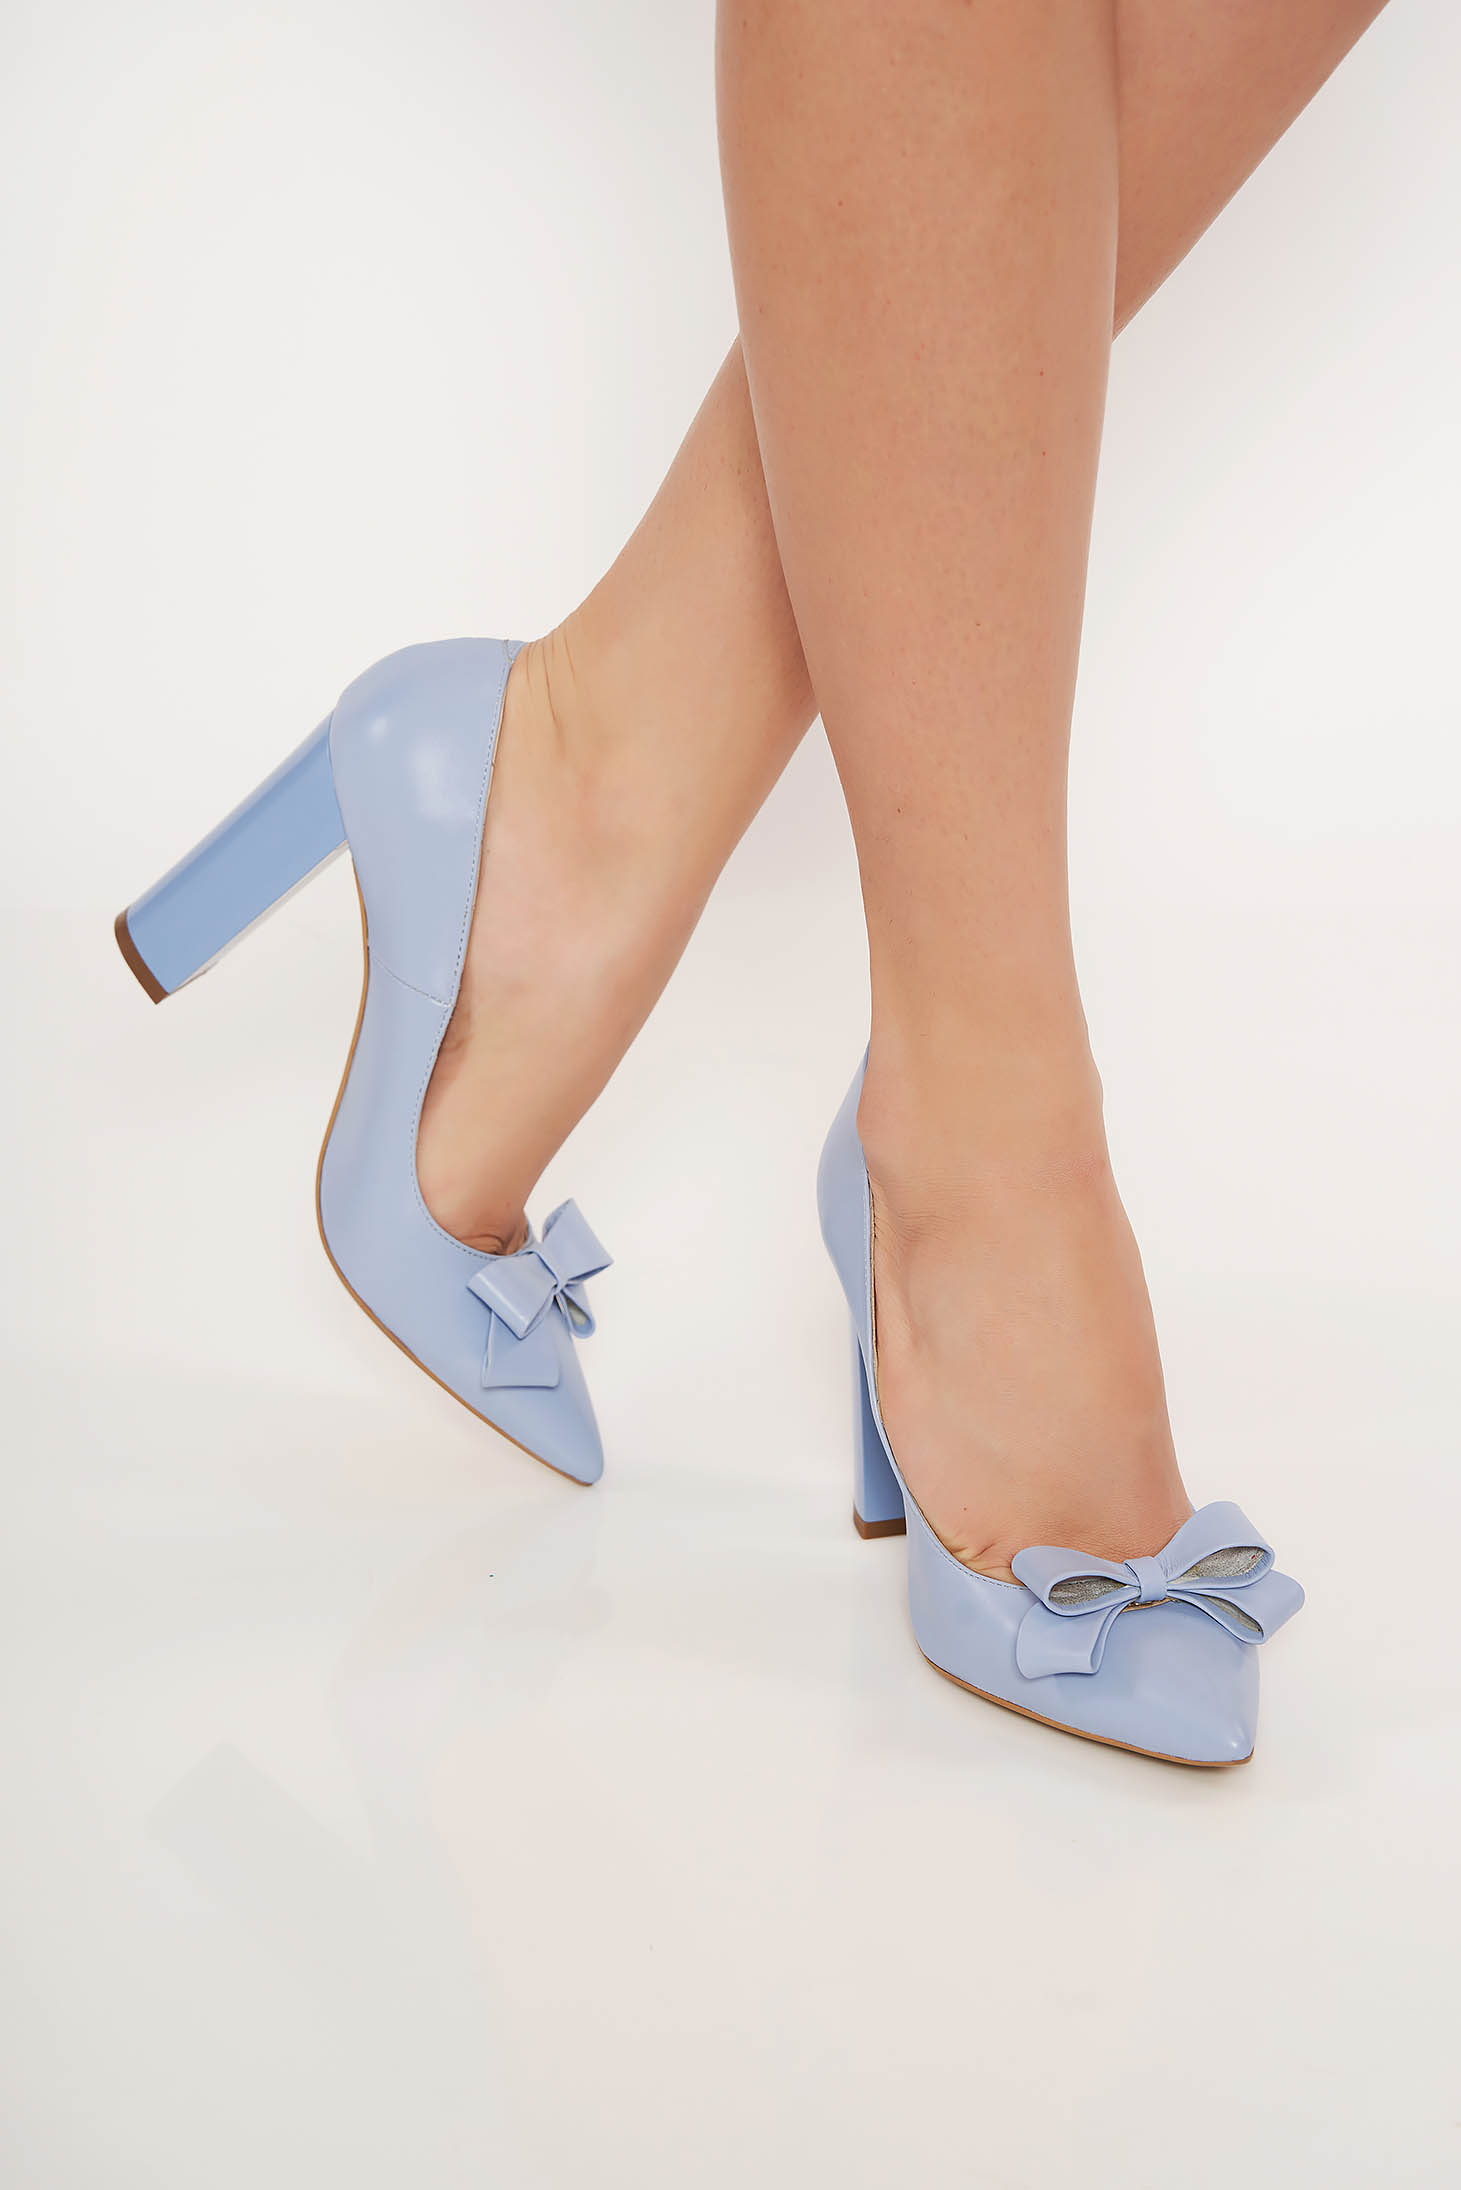 Lightblue office shoes natural leather chunky heel slightly pointed toe tip bow accessory